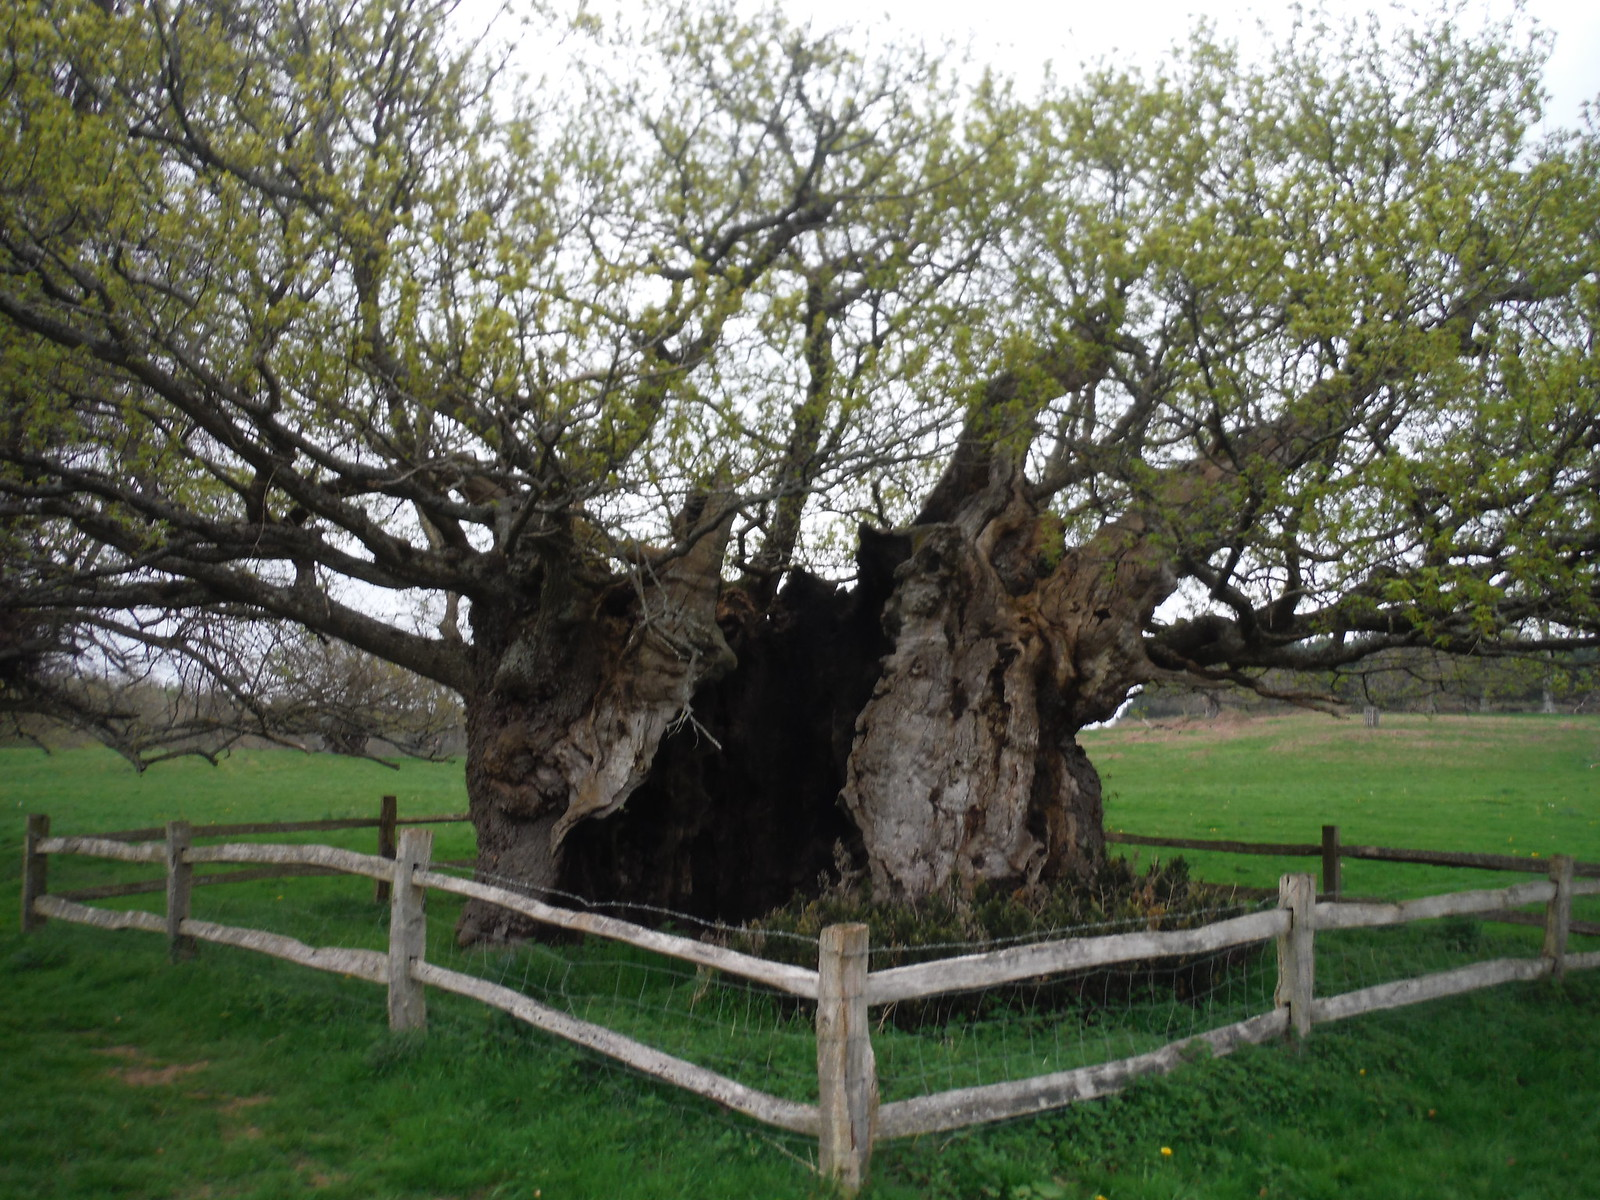 Queen Elizabeth I Oak, Cowdray Estate SWC Walk 48 Haslemere to Midhurst (via Lurgashall or Lickfold)